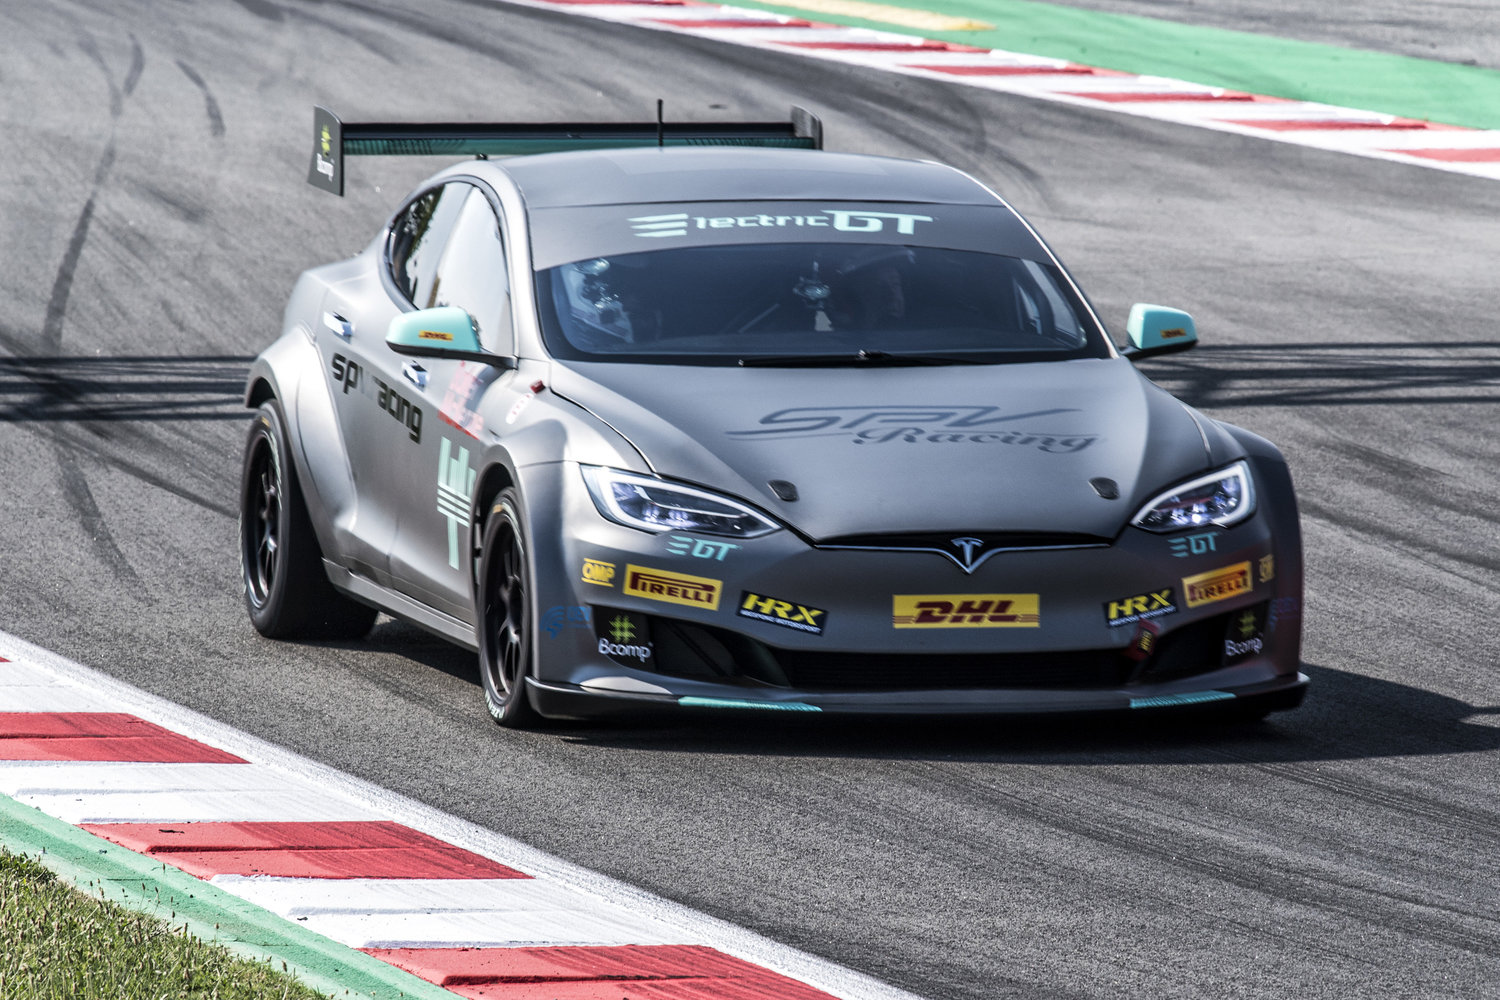 Electric Gt Championship Go Back Gallery For Series Circuits Formulas Gts Tesla P100d Makes Global Debut In Barcelona Holdings Inc And Spv